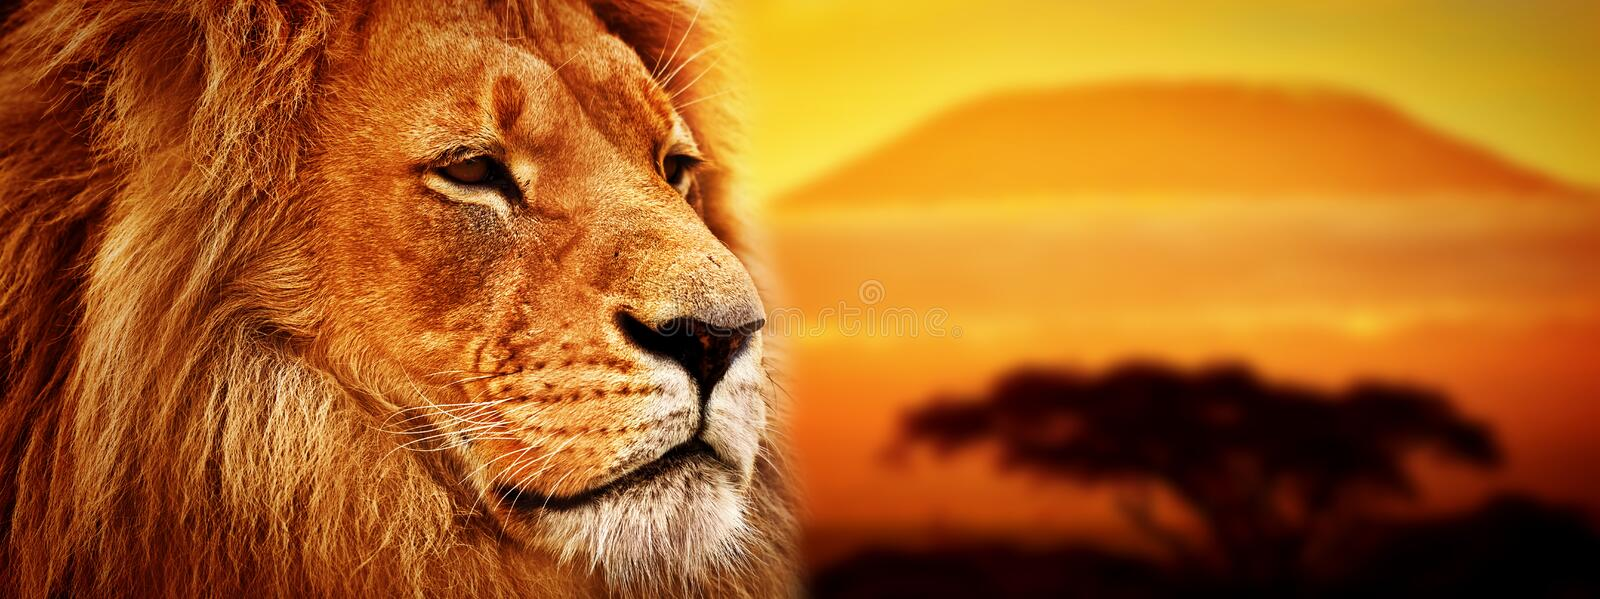 Lion portrait on savanna. Mount Kilimanjaro royalty free stock image